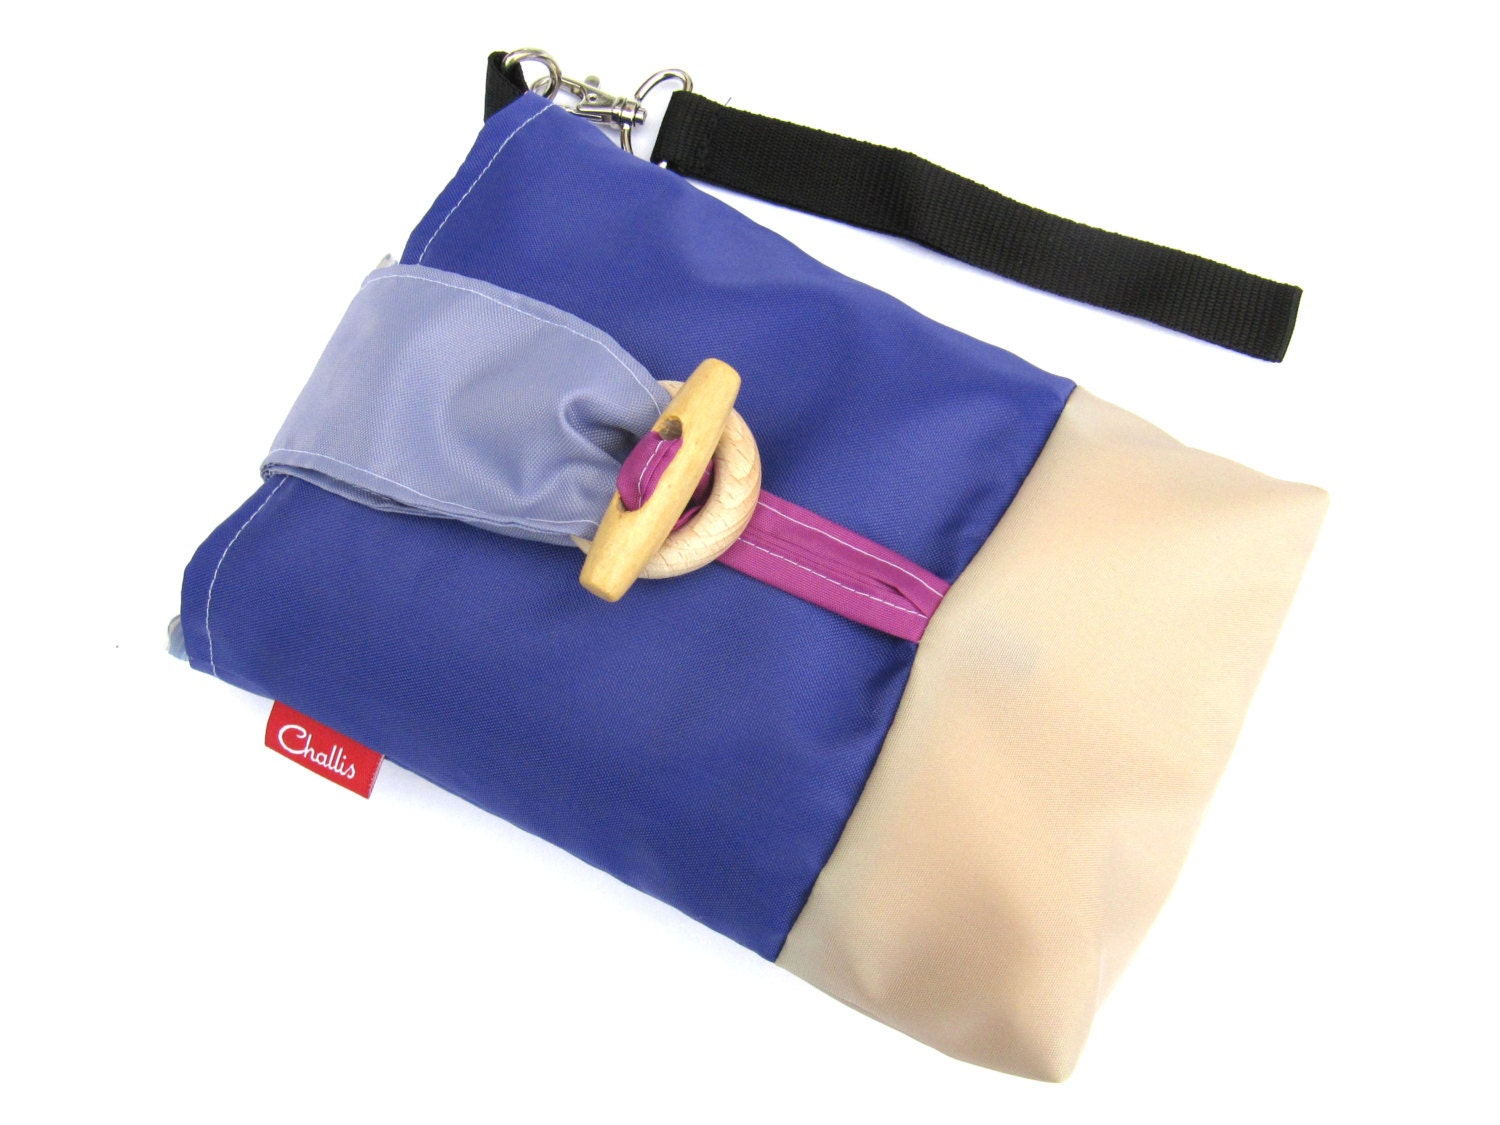 Small Nappy Bag  Diaper Pouch  Baby Changing Bag  Second Time Mum  Baby Boy Gift  New Dad Gift  Yummy Mummy  Nappy Wipes Case